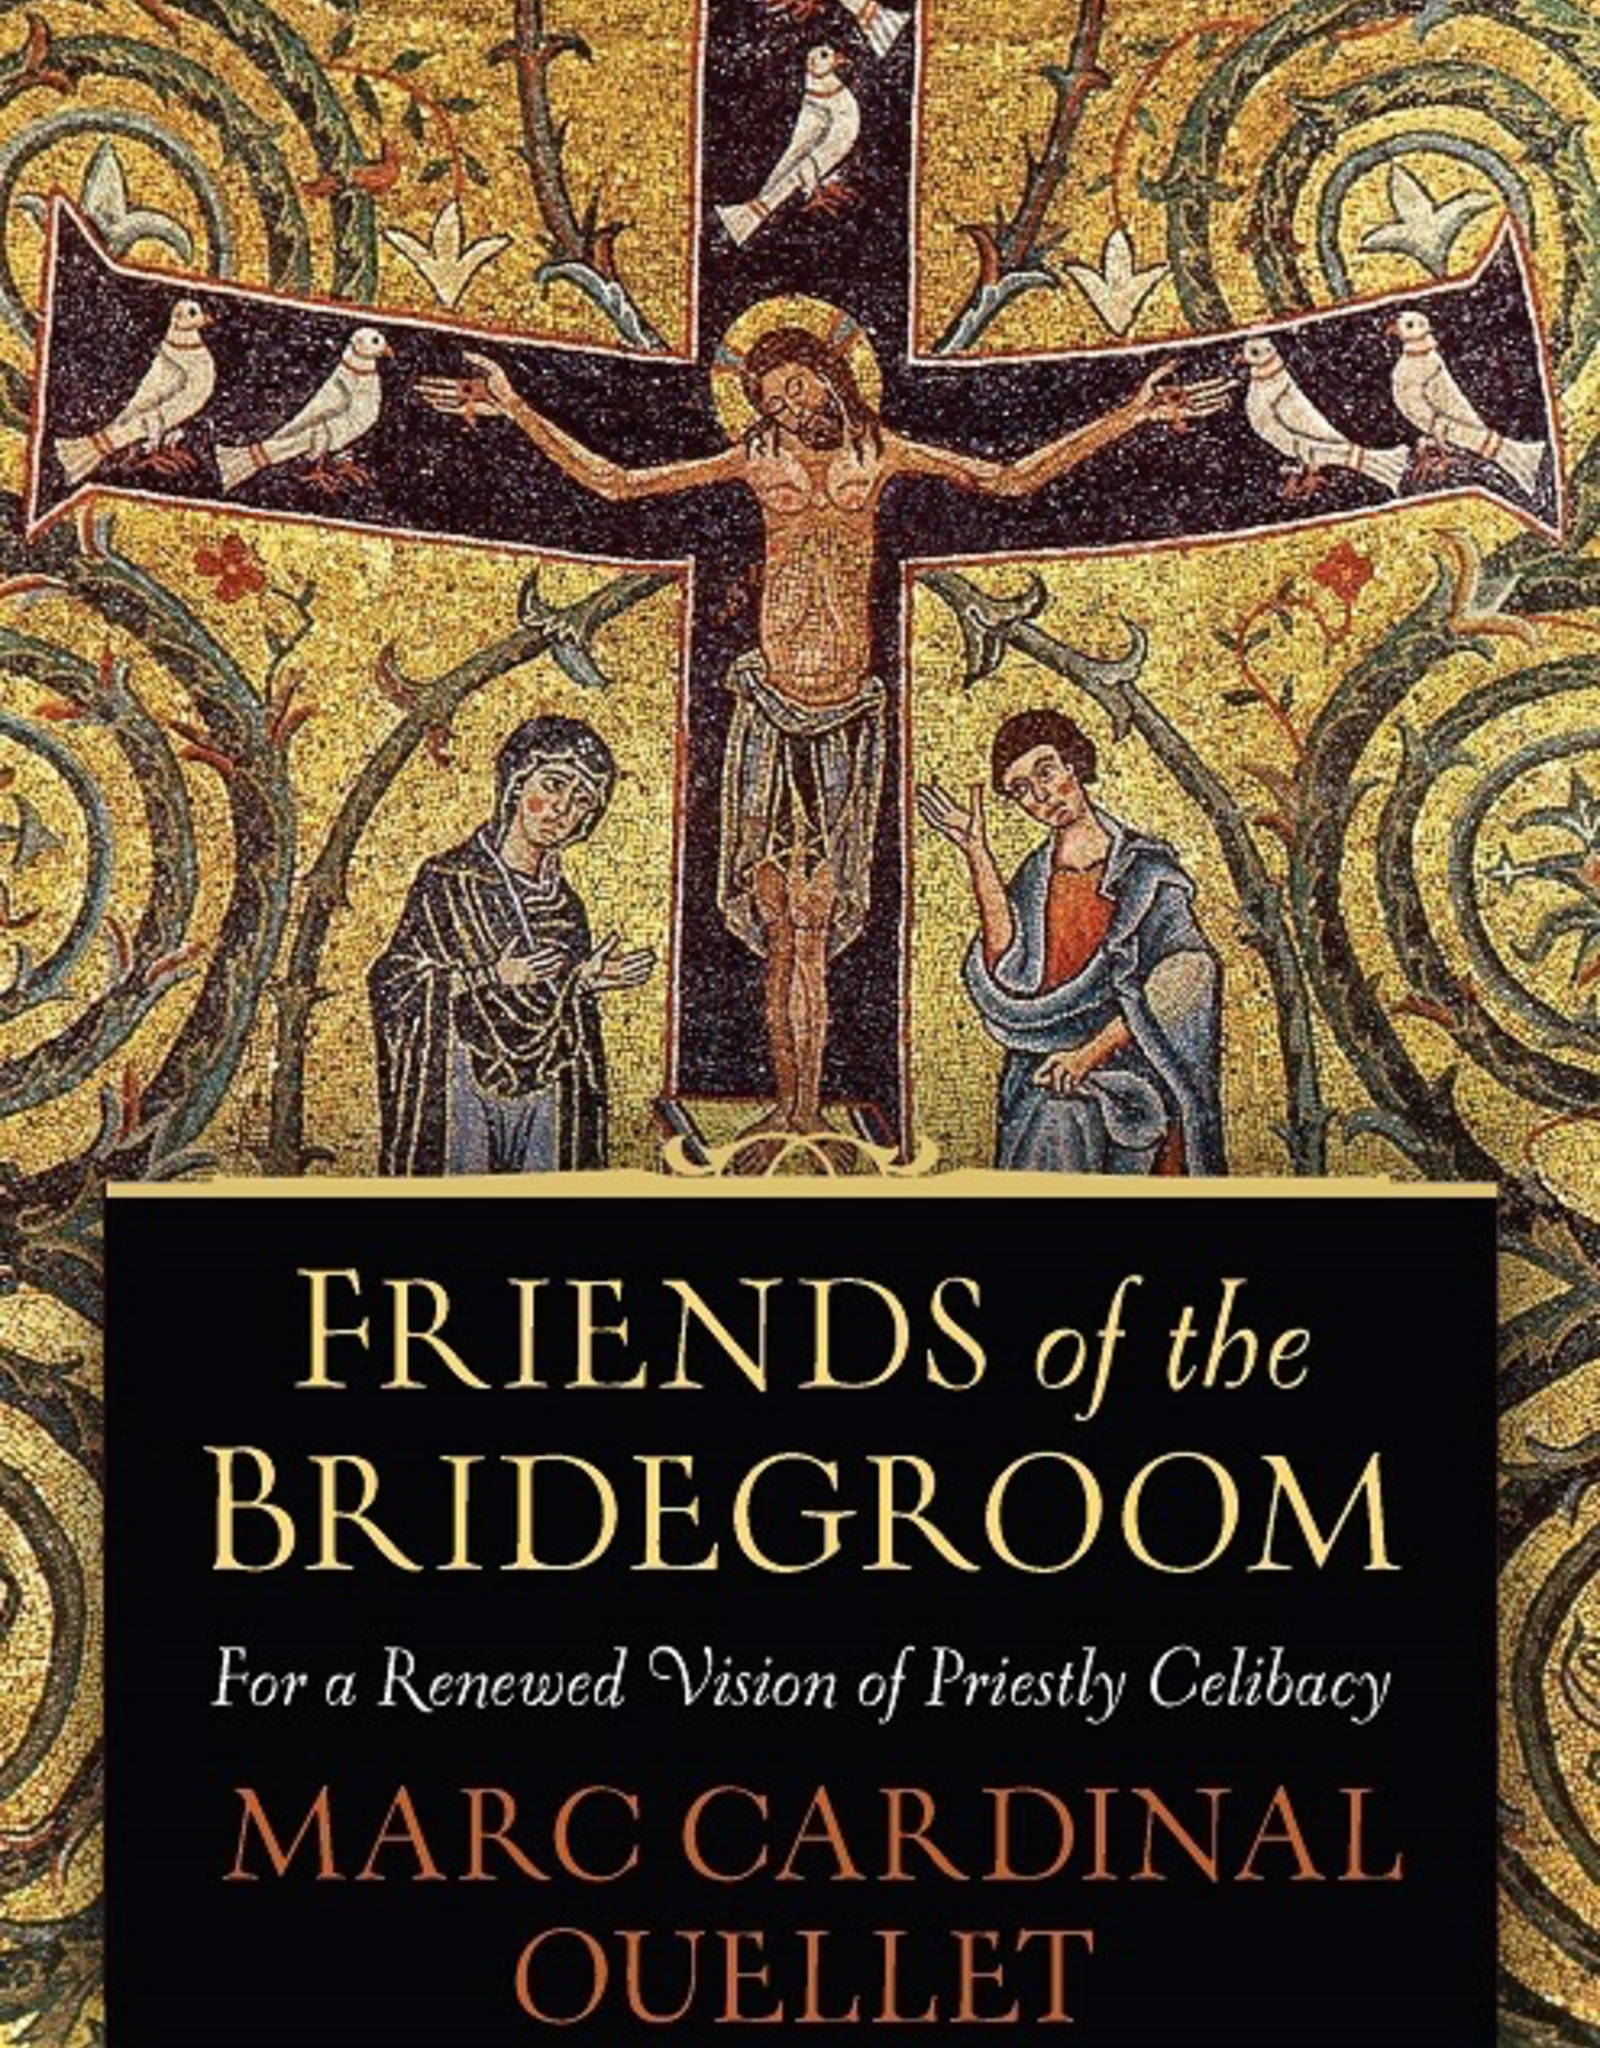 Sophia Institute Friends of the Bridegroom:  For a Renewed Vision of Priestly Celibacy, by Marc Cardinal Oullet (paperback)